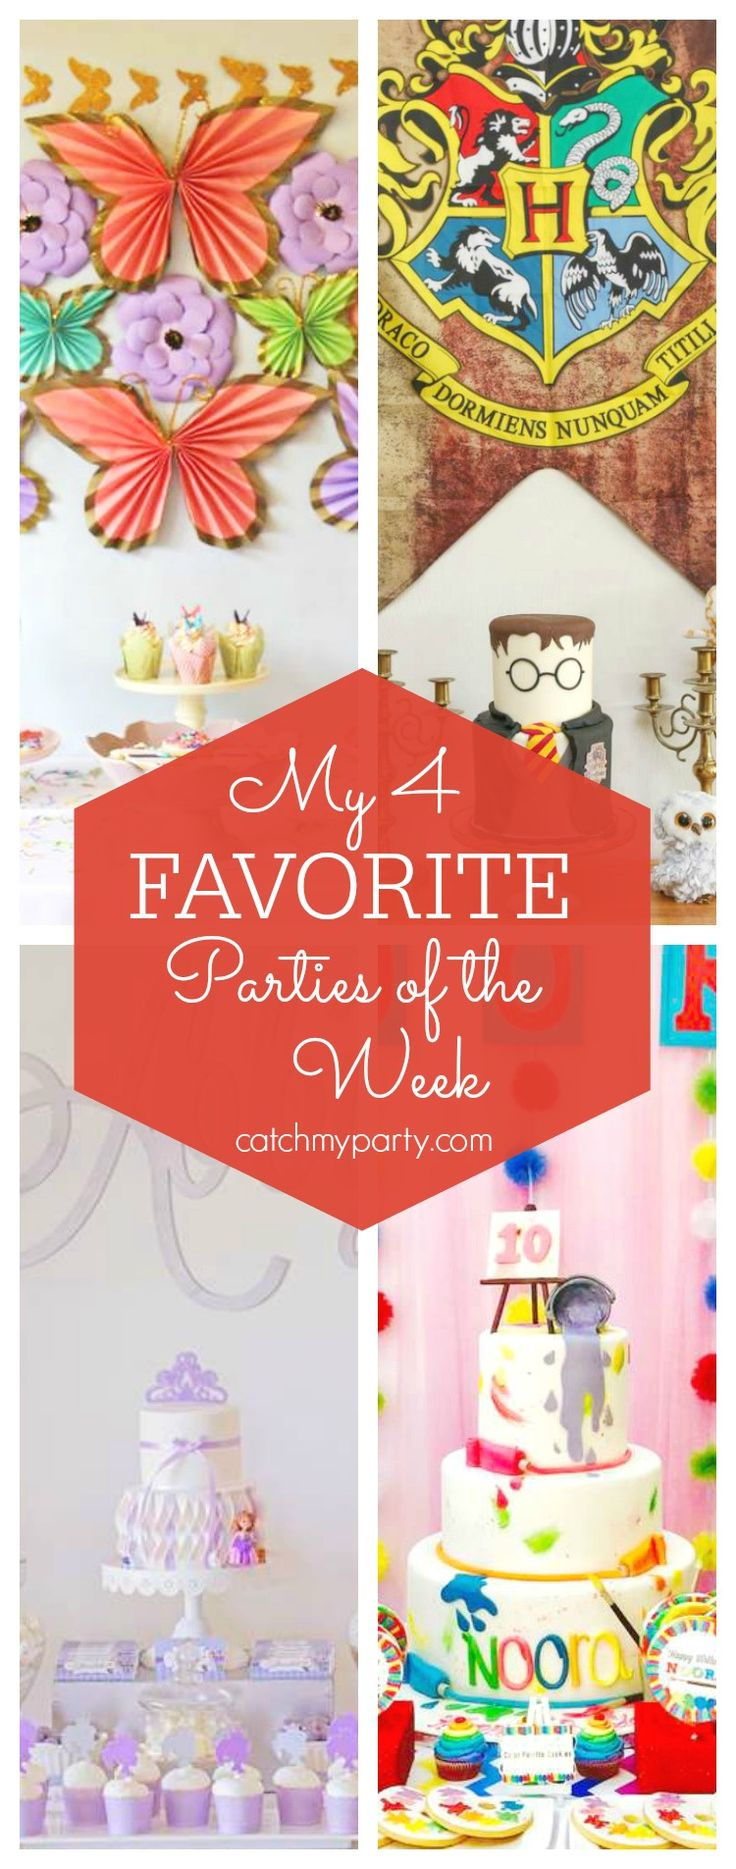 My favorite parties this week include a Spring Bloom baby shower, a harry Potter birthday party, a Sofia the First birthday party and an Art party | CatchMyParty.com